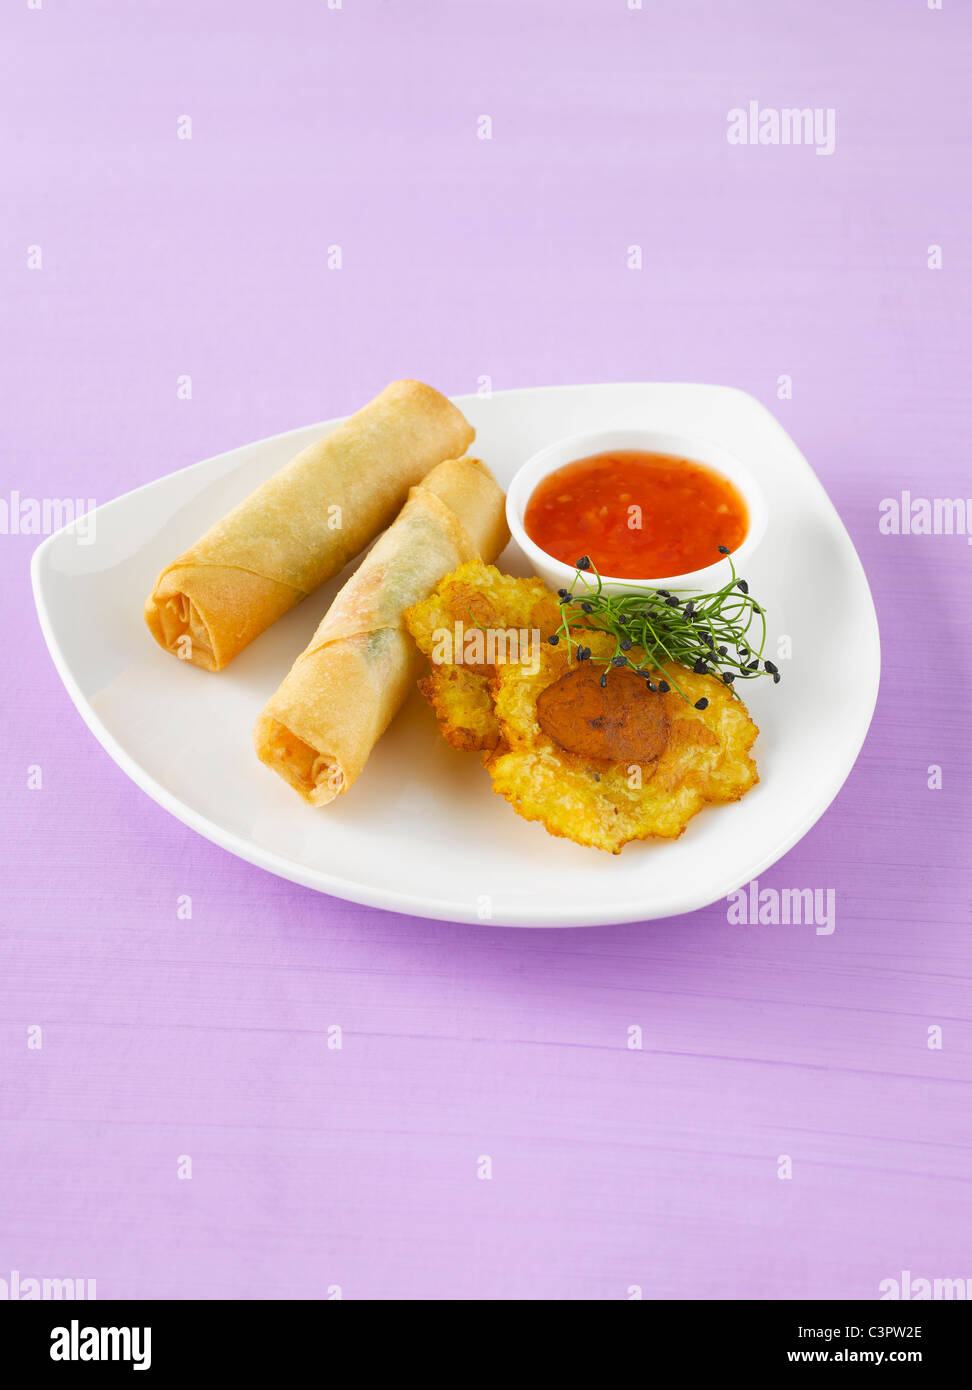 Spring rolls and plantain crisps with chili sauce - Stock Image